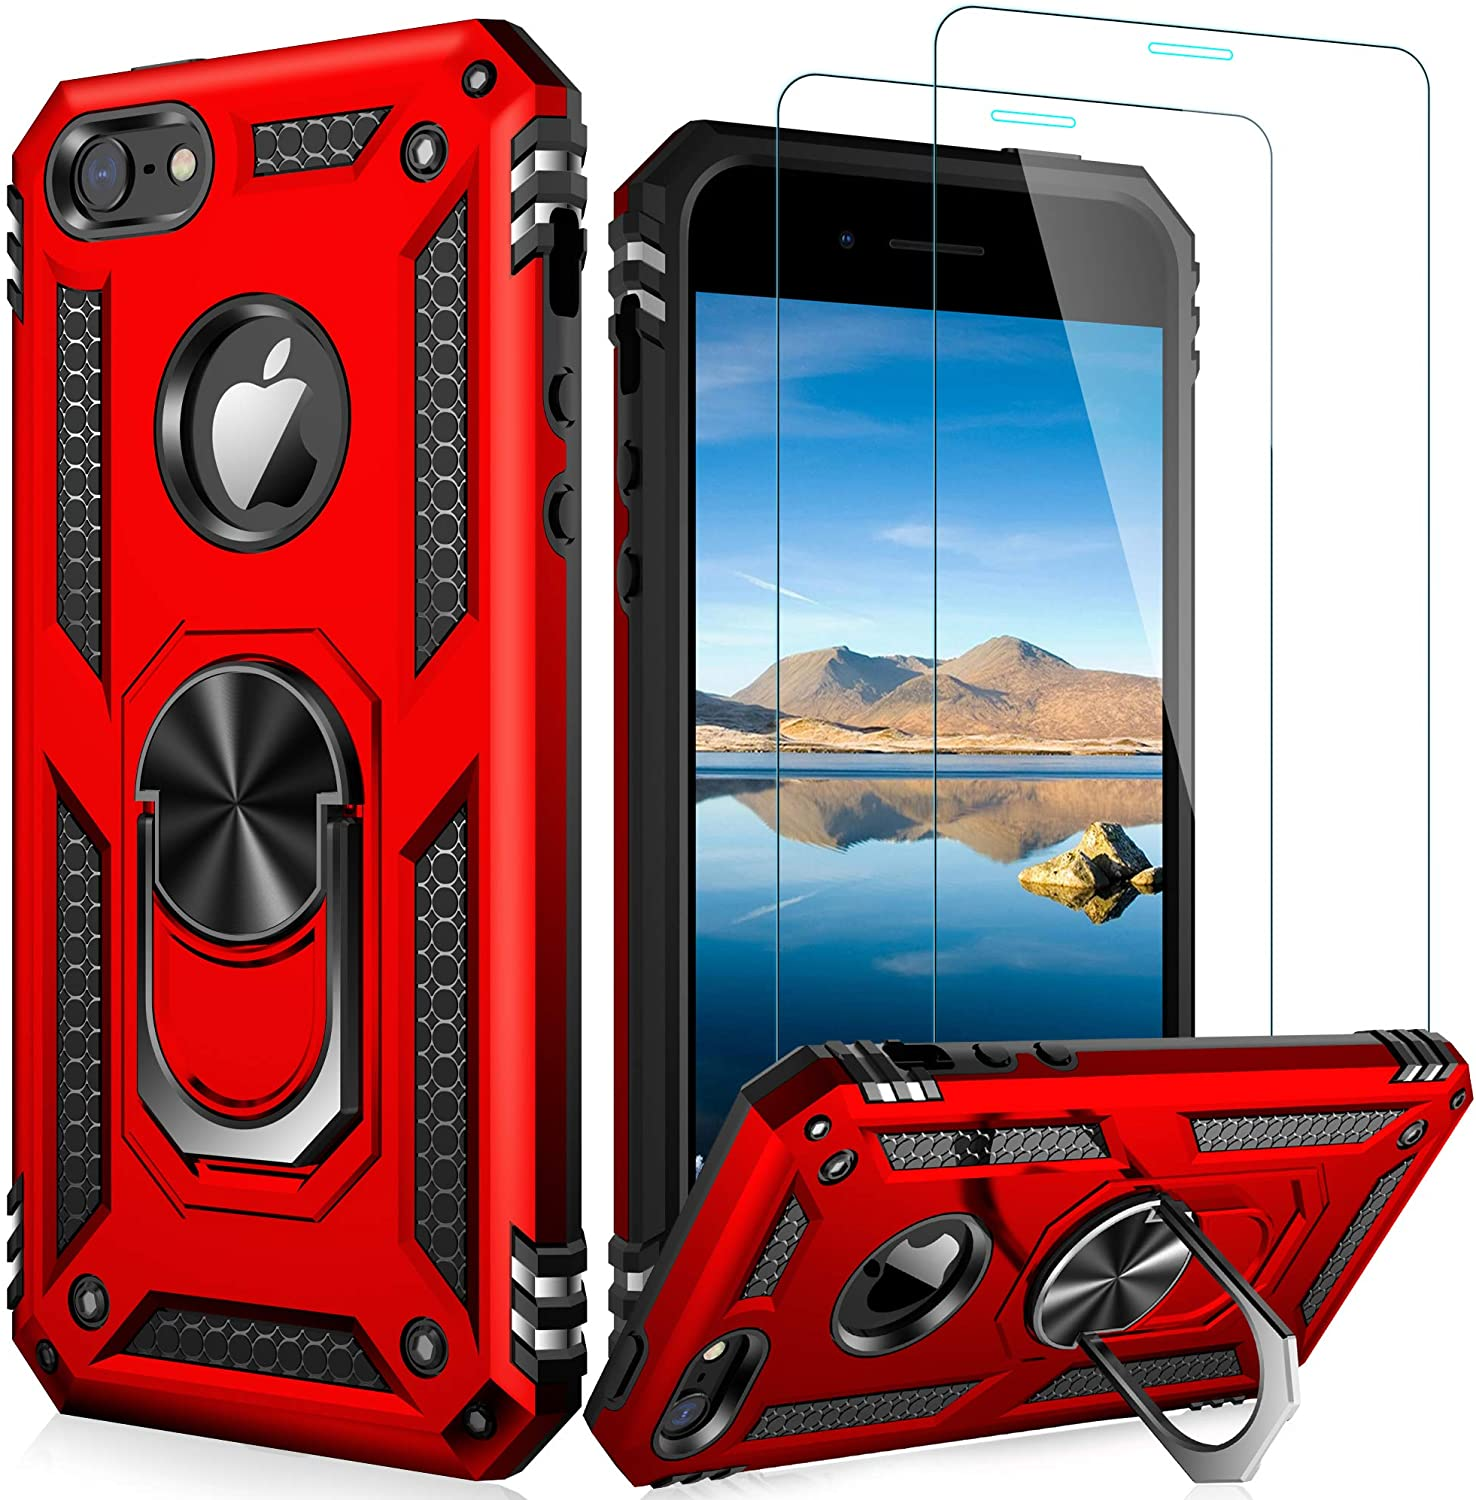 LUMARKE iPhone SE Case(2016),iPhone 5s Case,iPhone 5 Case with Tempered Glass Sreen Protector,Pass 16ft Drop Test Military Grade Cover Protective Phone Case for iPhone 5/5s/SE 2016 Red